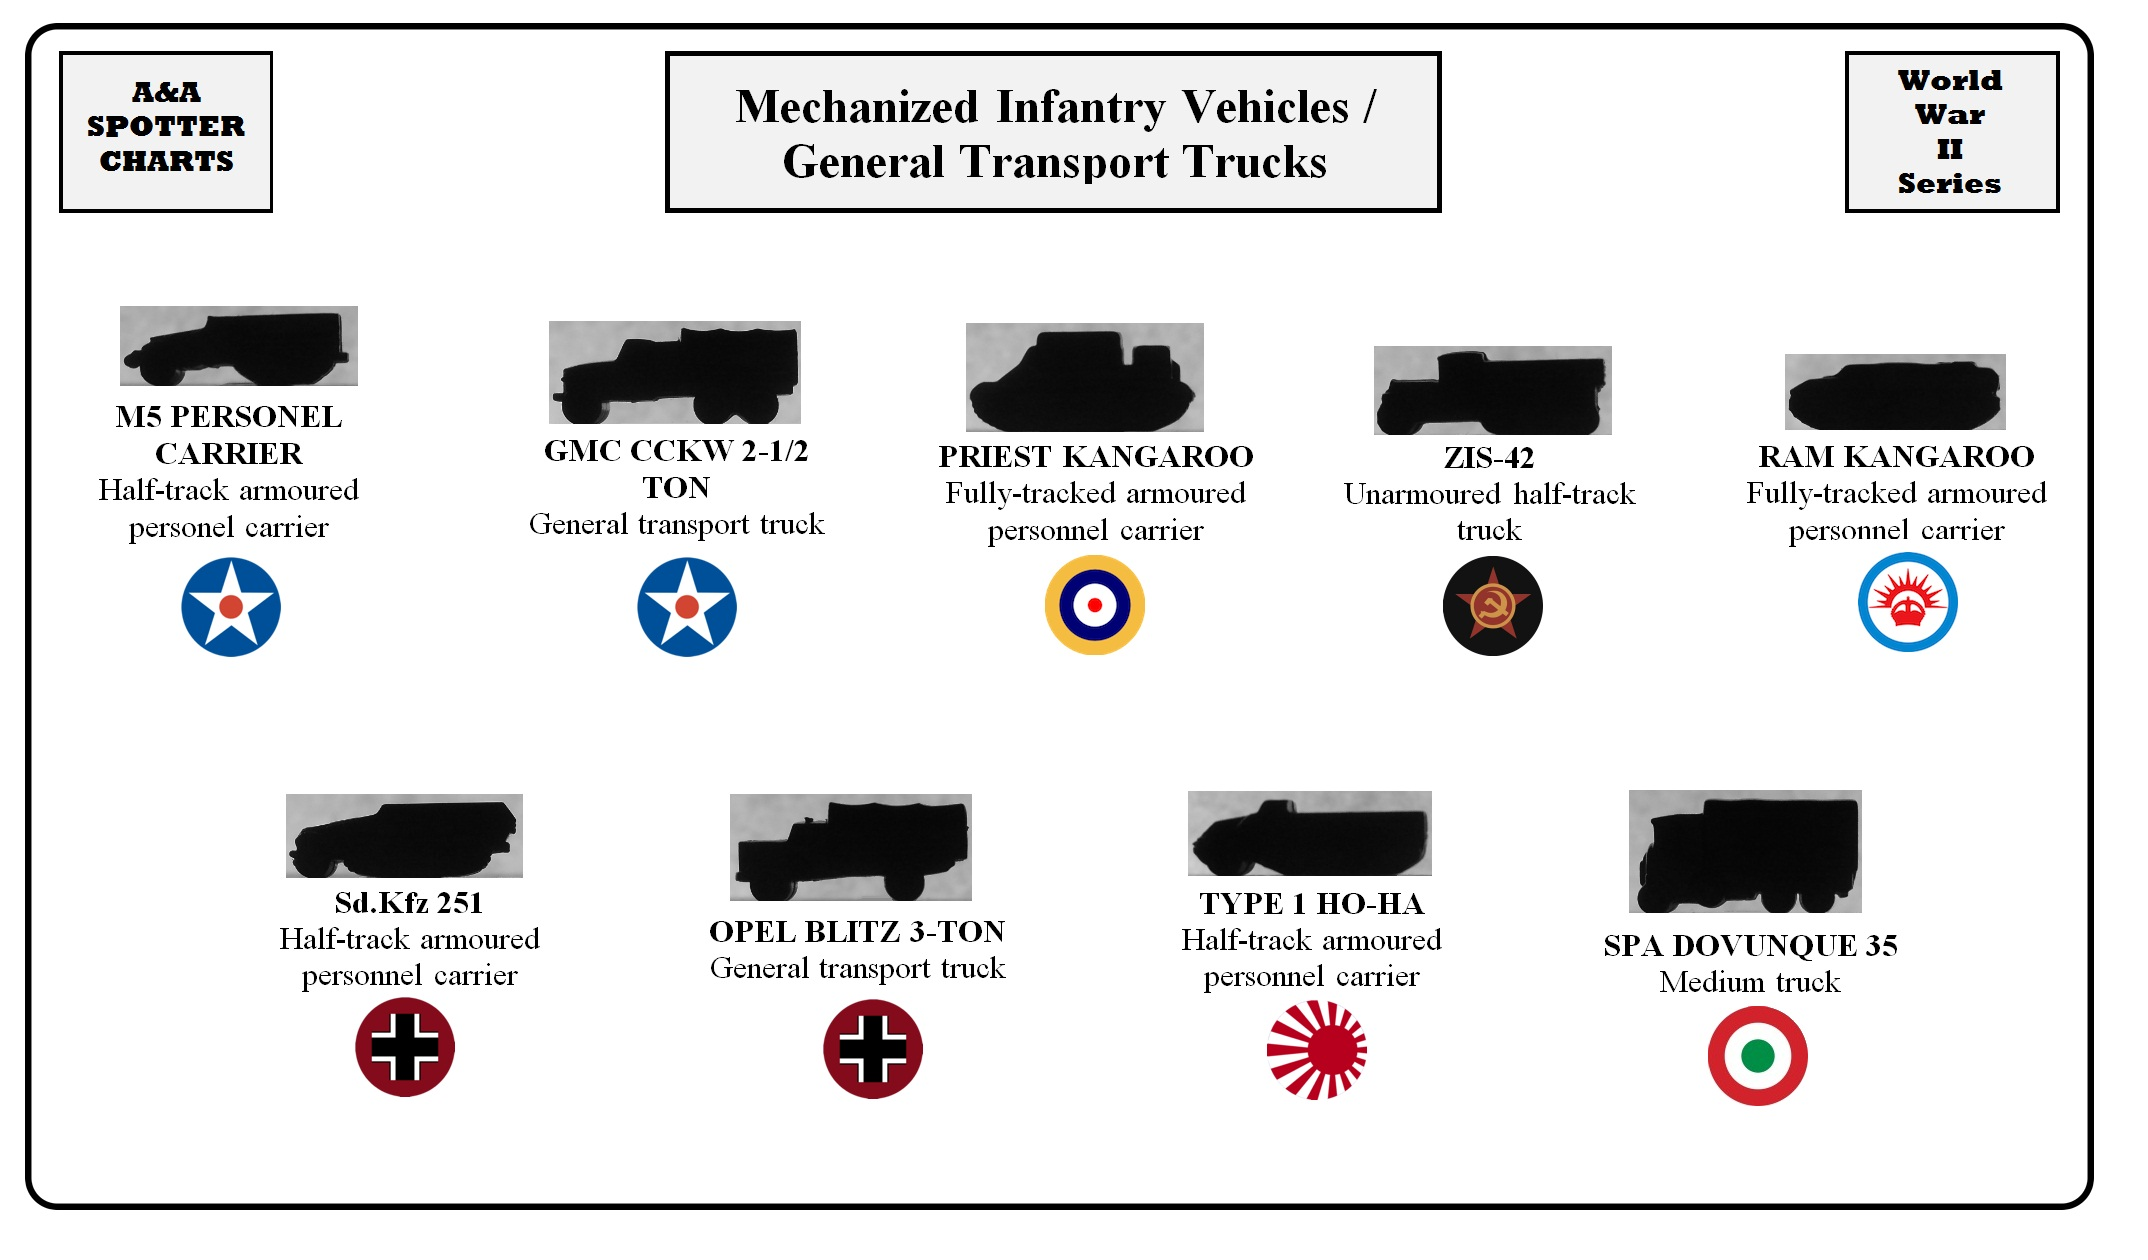 WW2-Land-Mechanized Infantry & Trucks.jpg